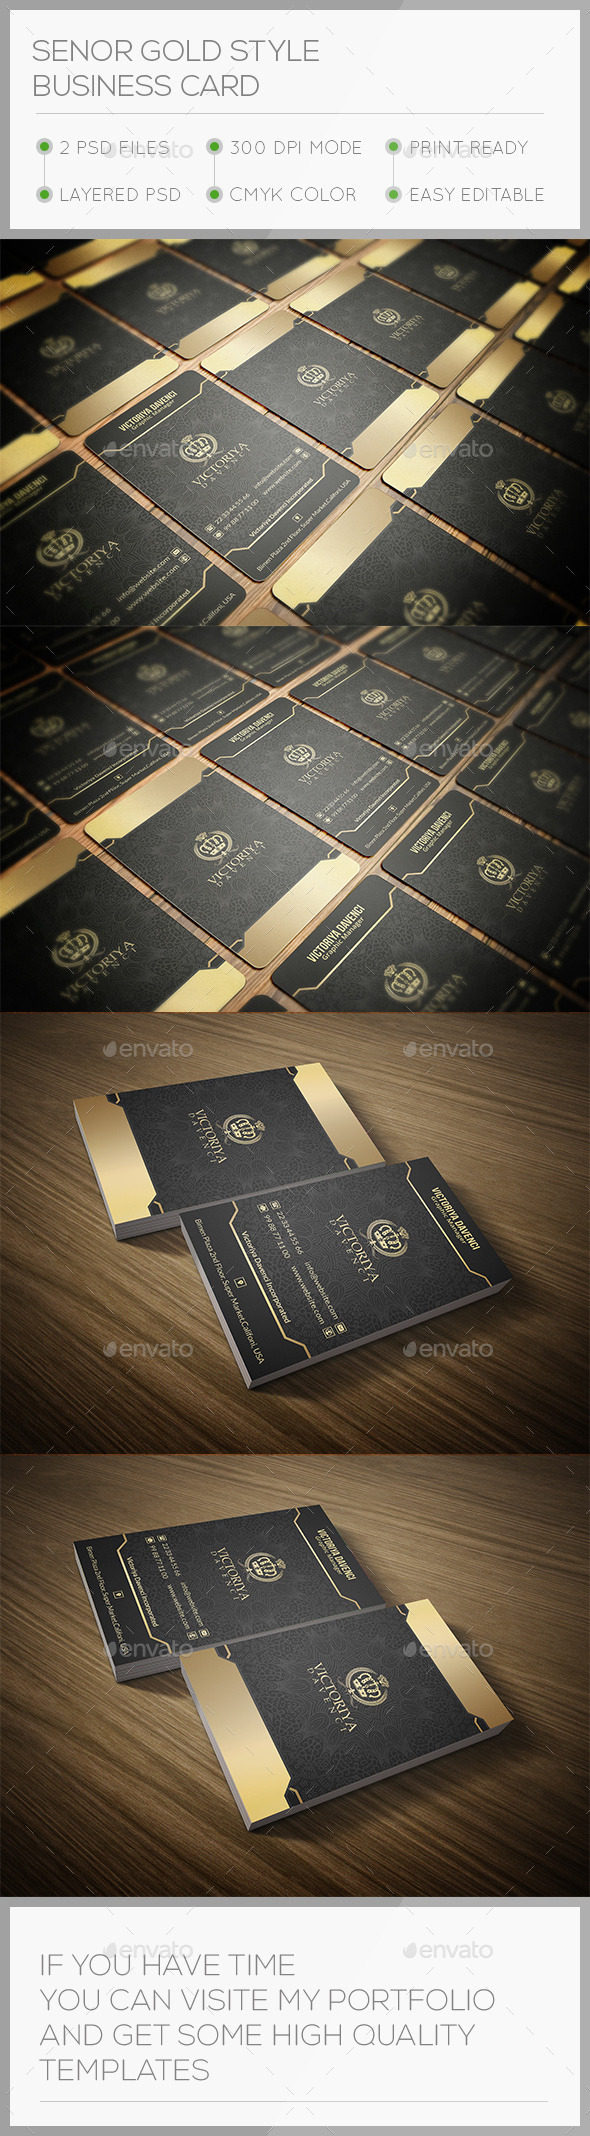 GraphicRiver Senor Gold Style Business Card 10654298